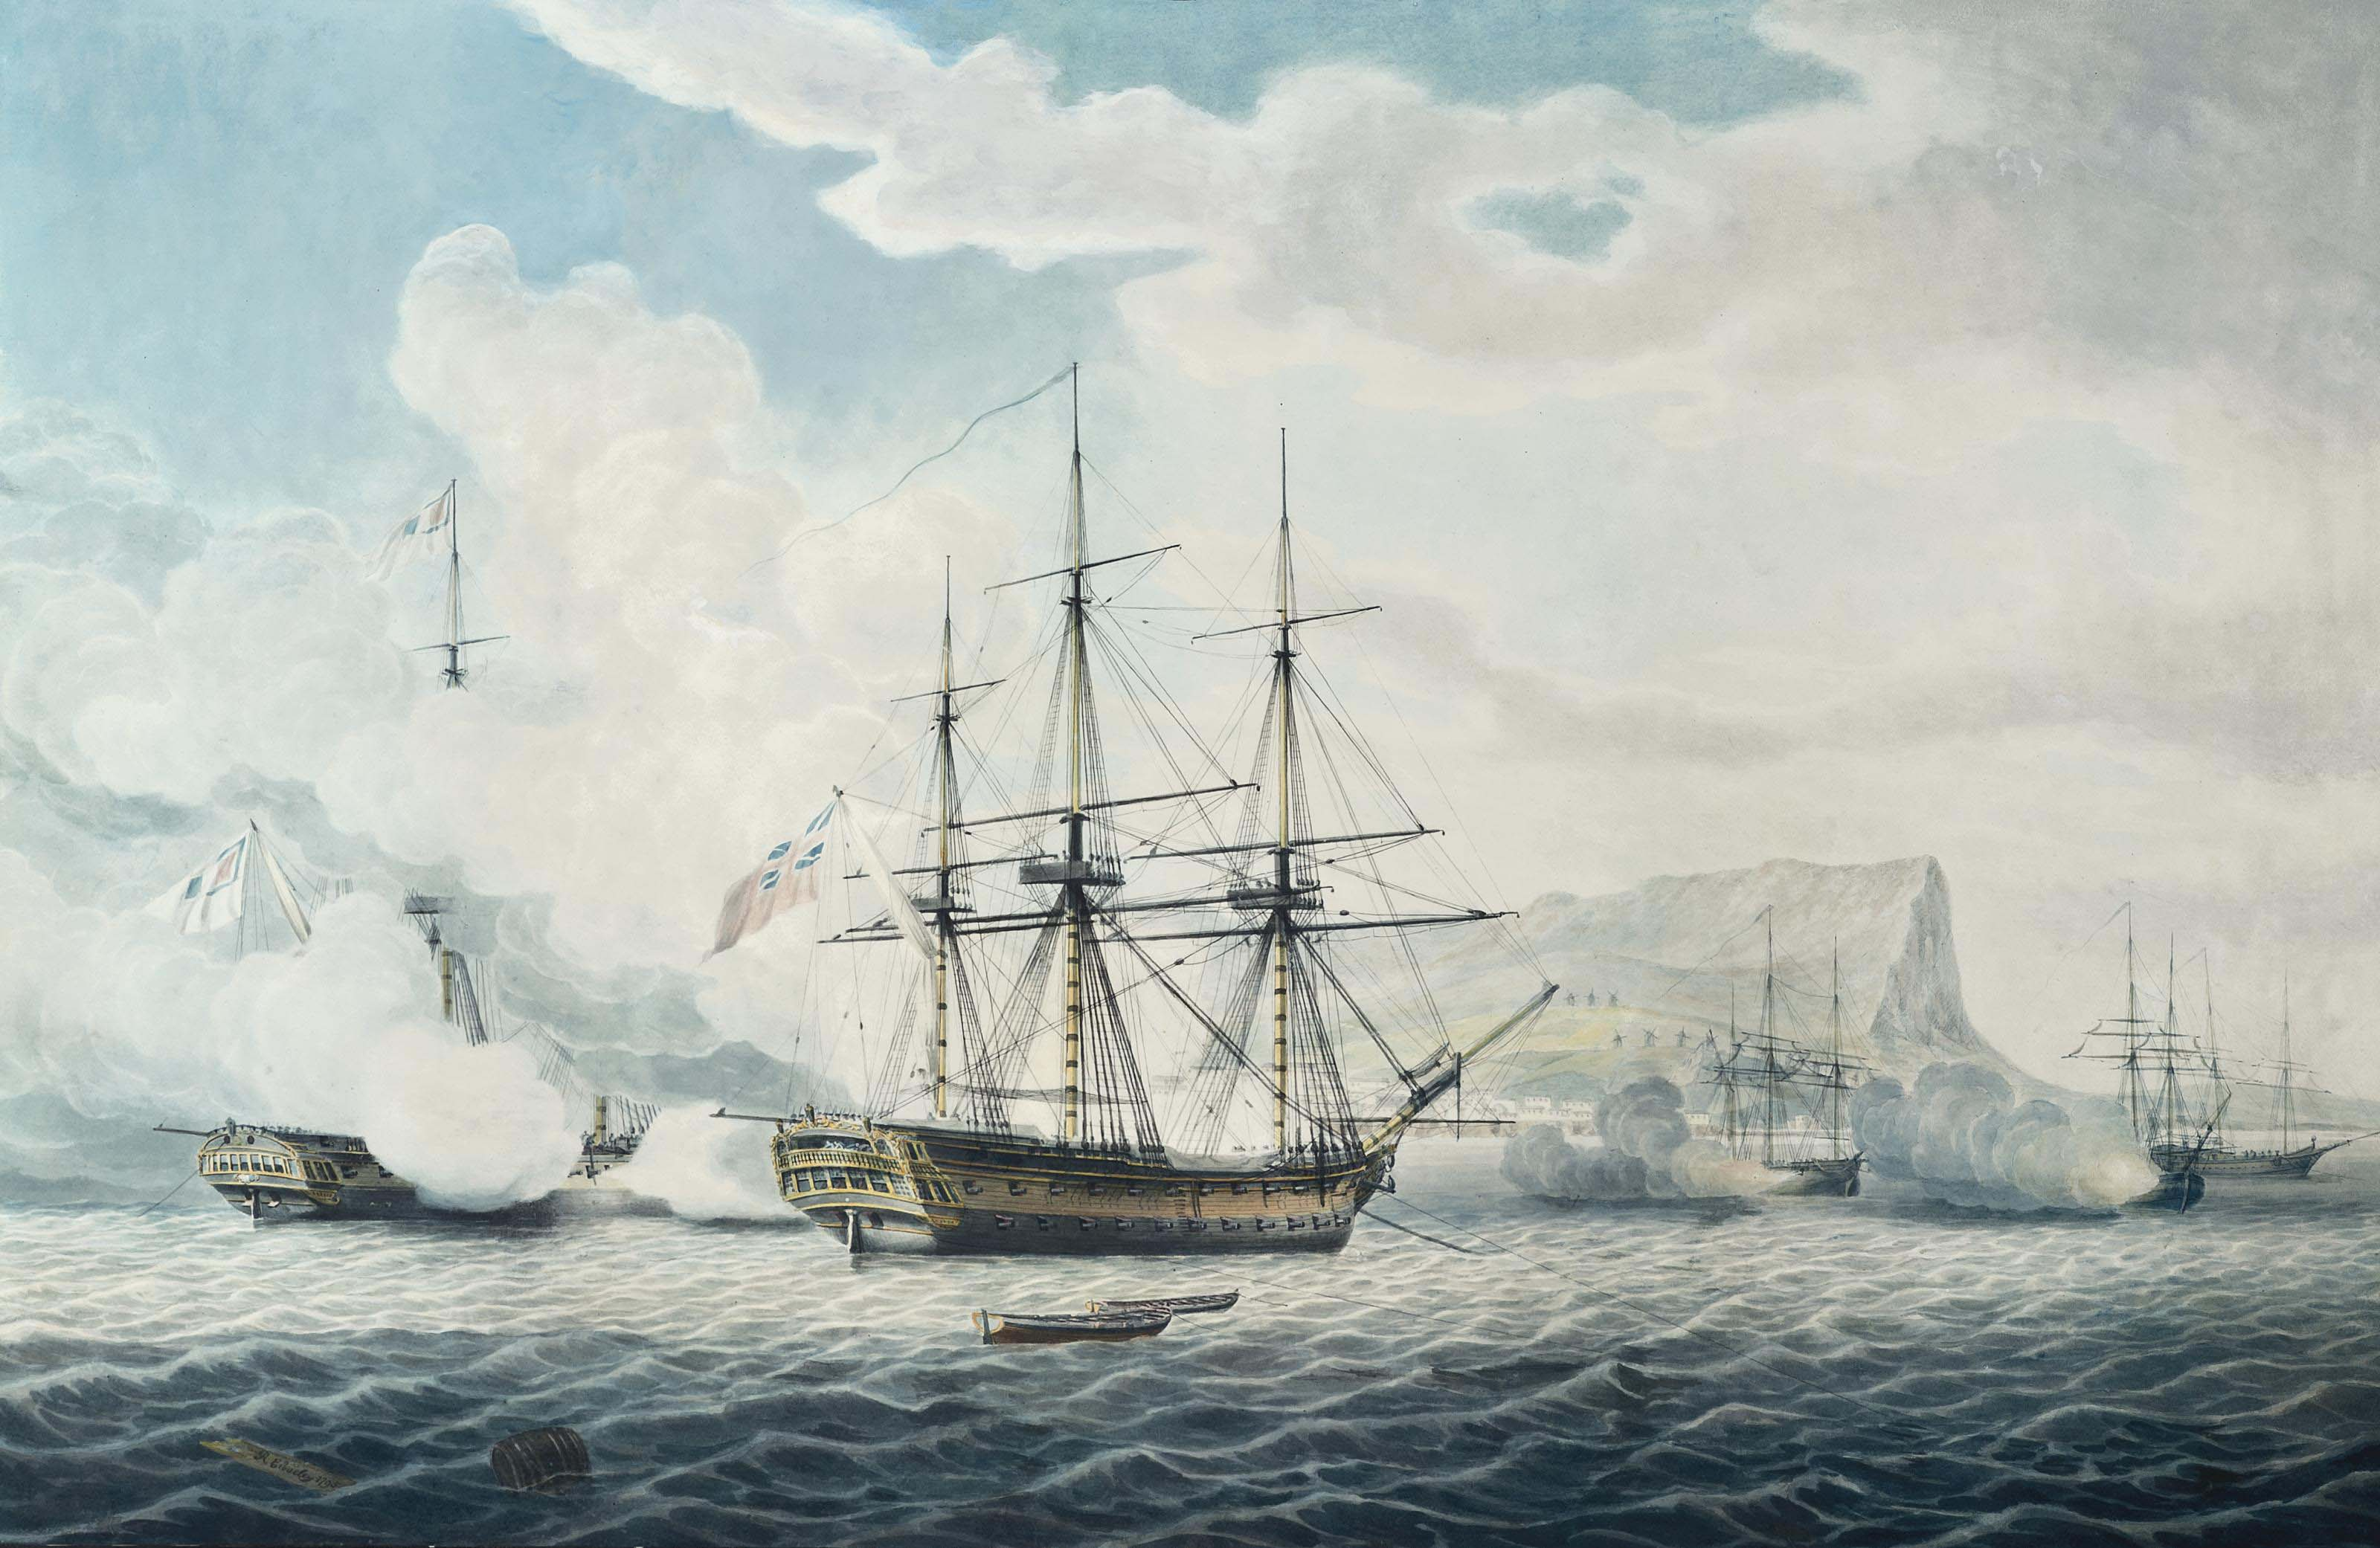 H.M.S. Romney capturing the French 44-gun Sybille and three merchantmen in the roads off Mykonos, Greece, 17th June 1794